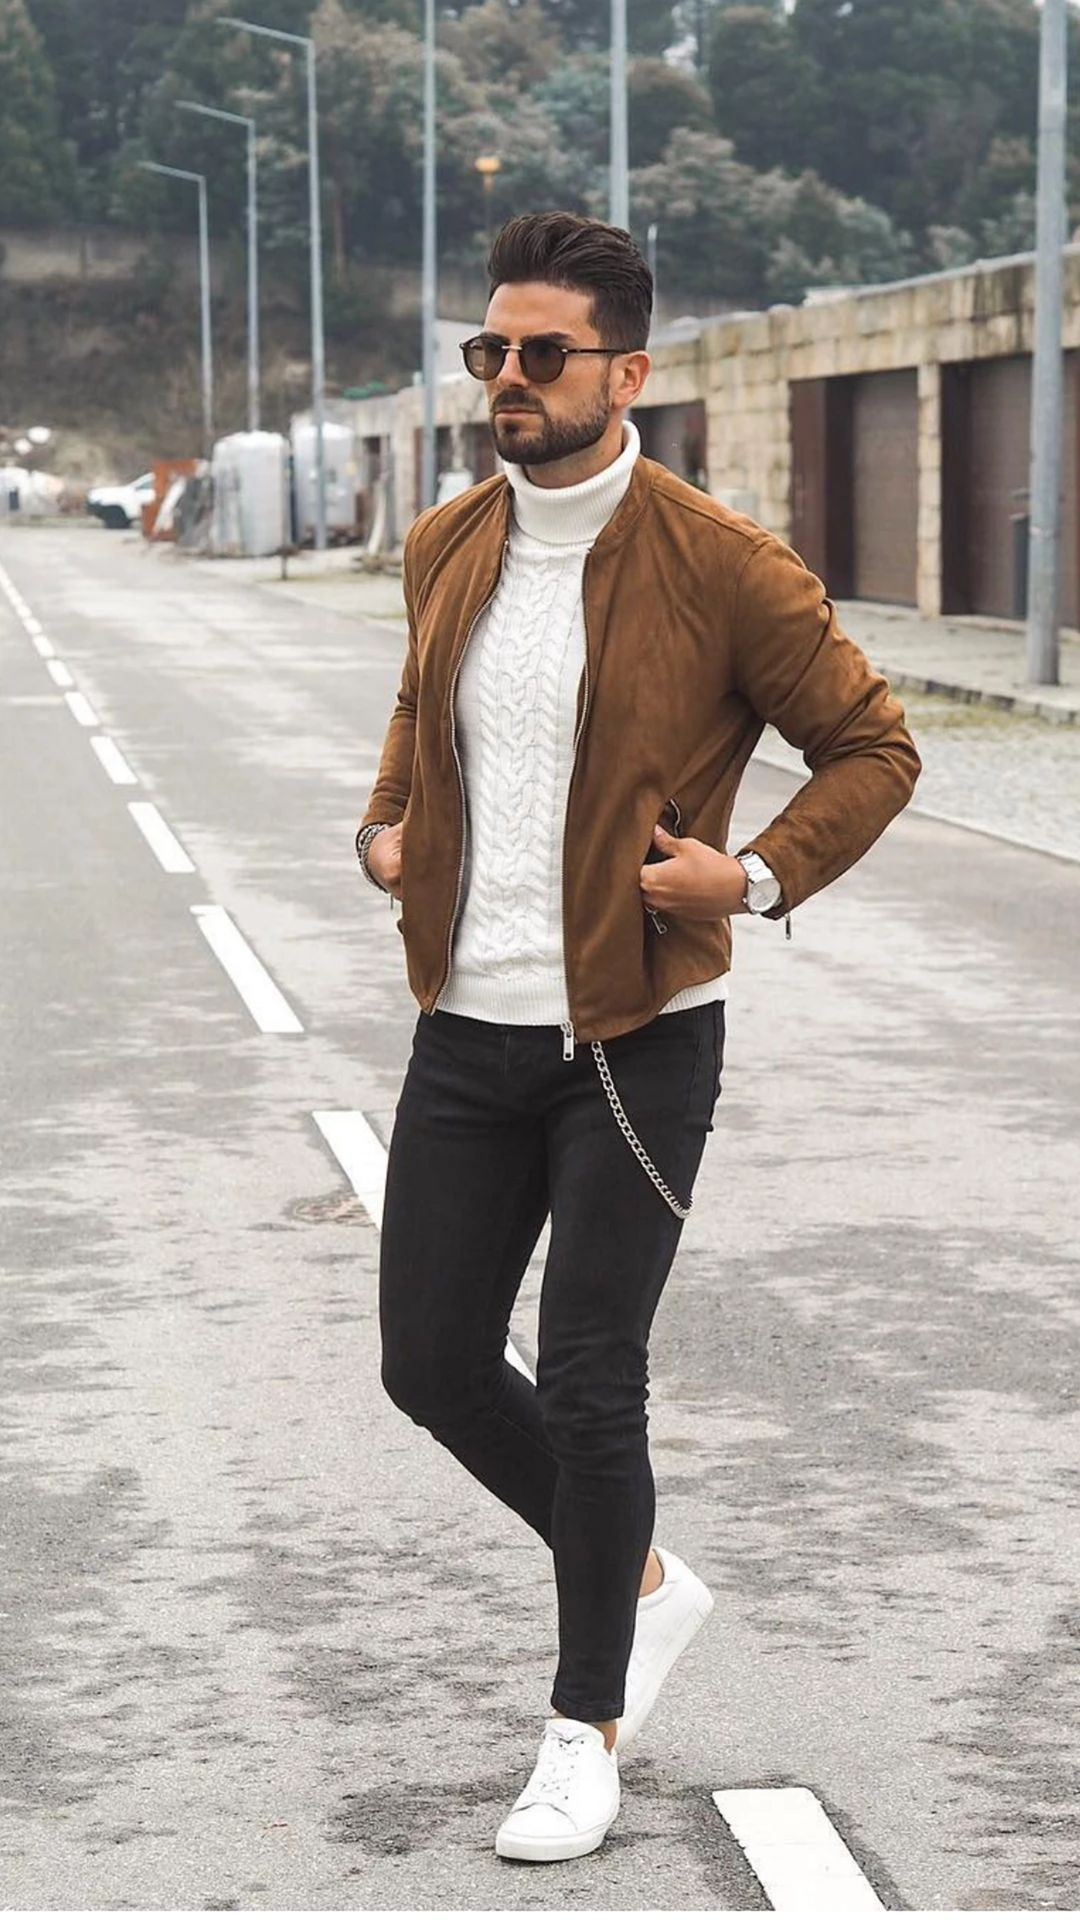 4 Cool OOTD Men's Outfit Ideas for Winter Holidays - Fashions Nowadays    Winter outfits men, Ootd men outfits, Fall outfits men